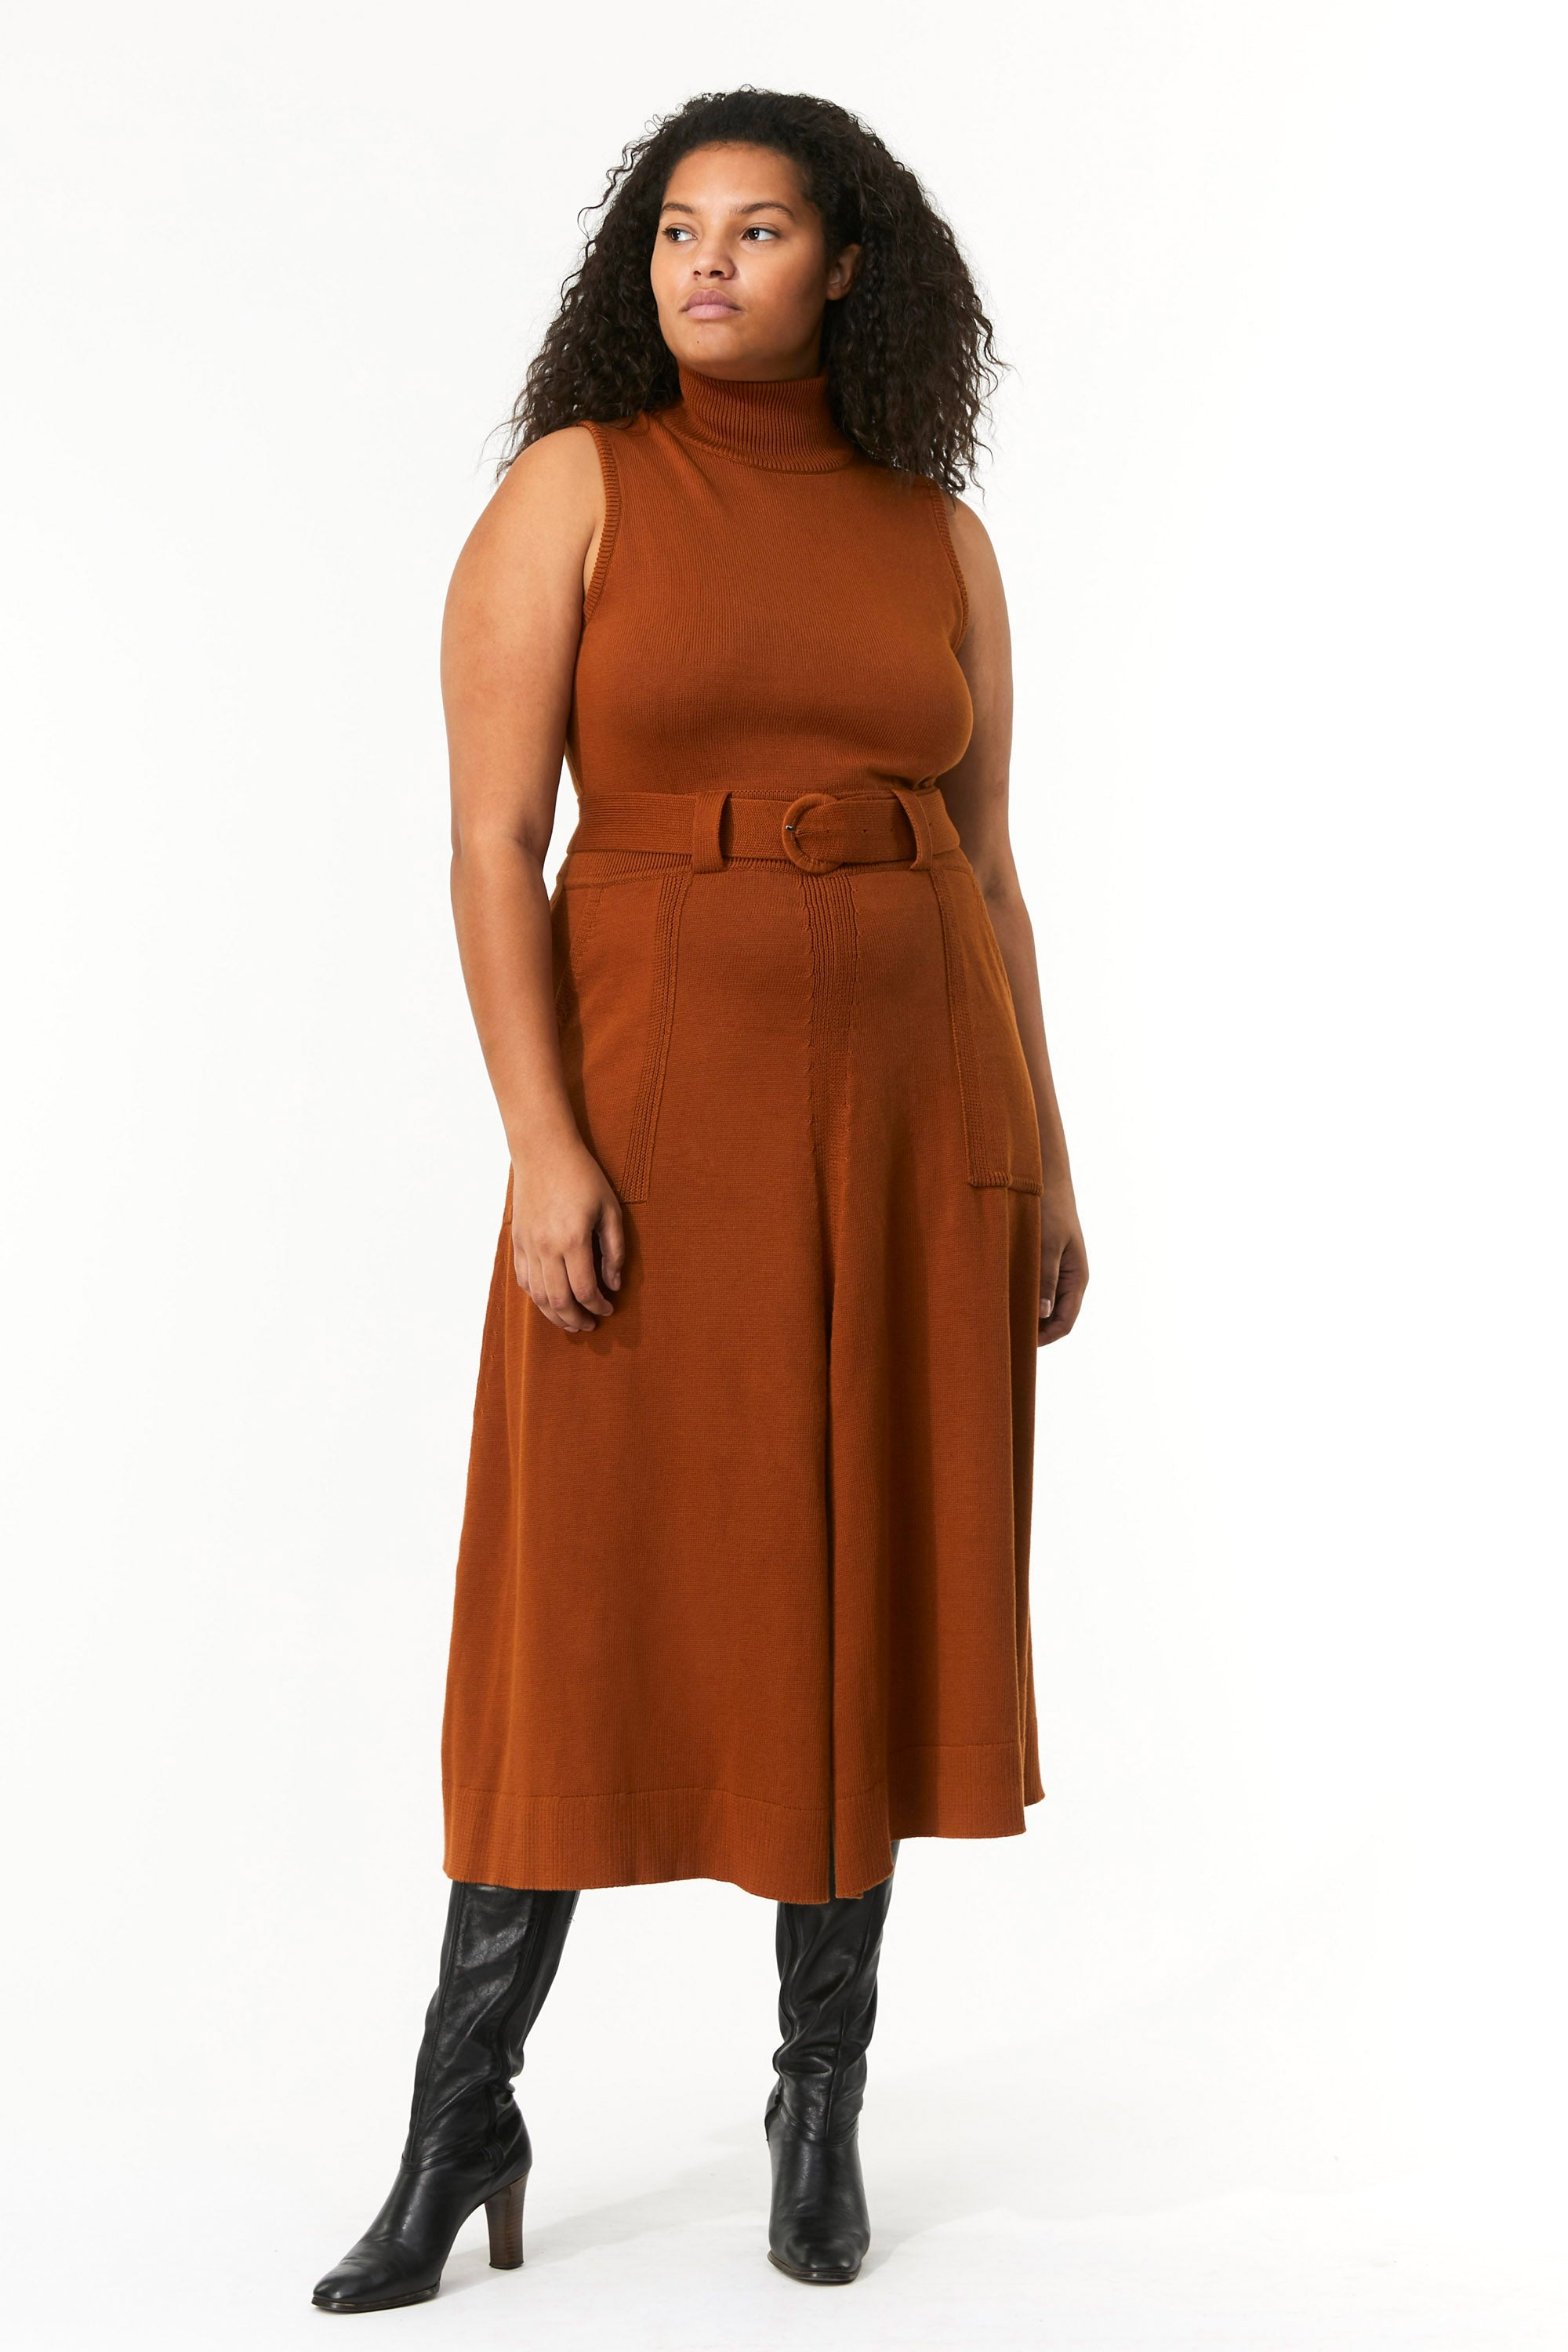 Mara Hoffman Extended Rust Elle Dress in organic cotton (front)